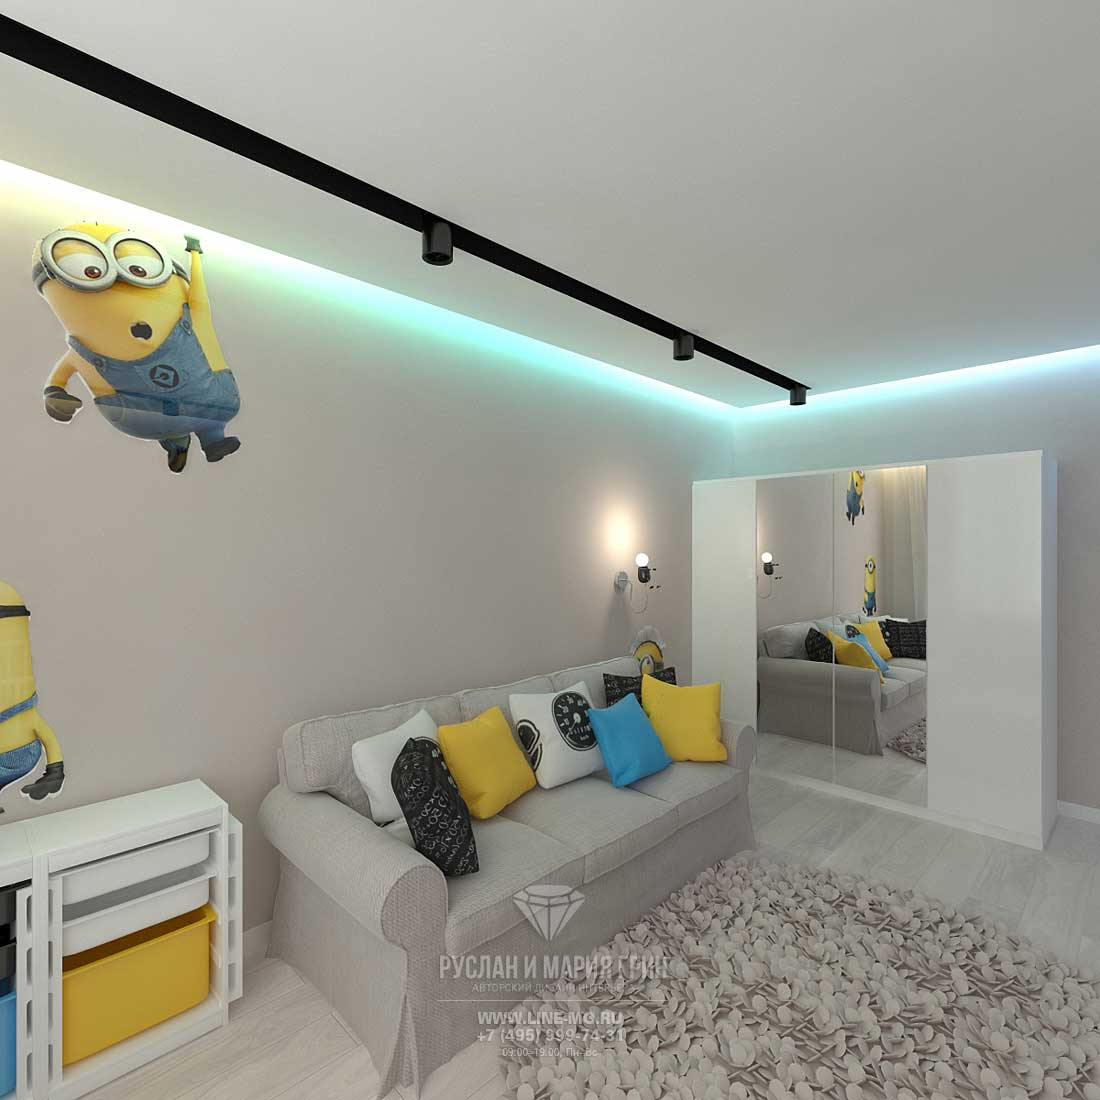 Children's room interior in a modern apartment